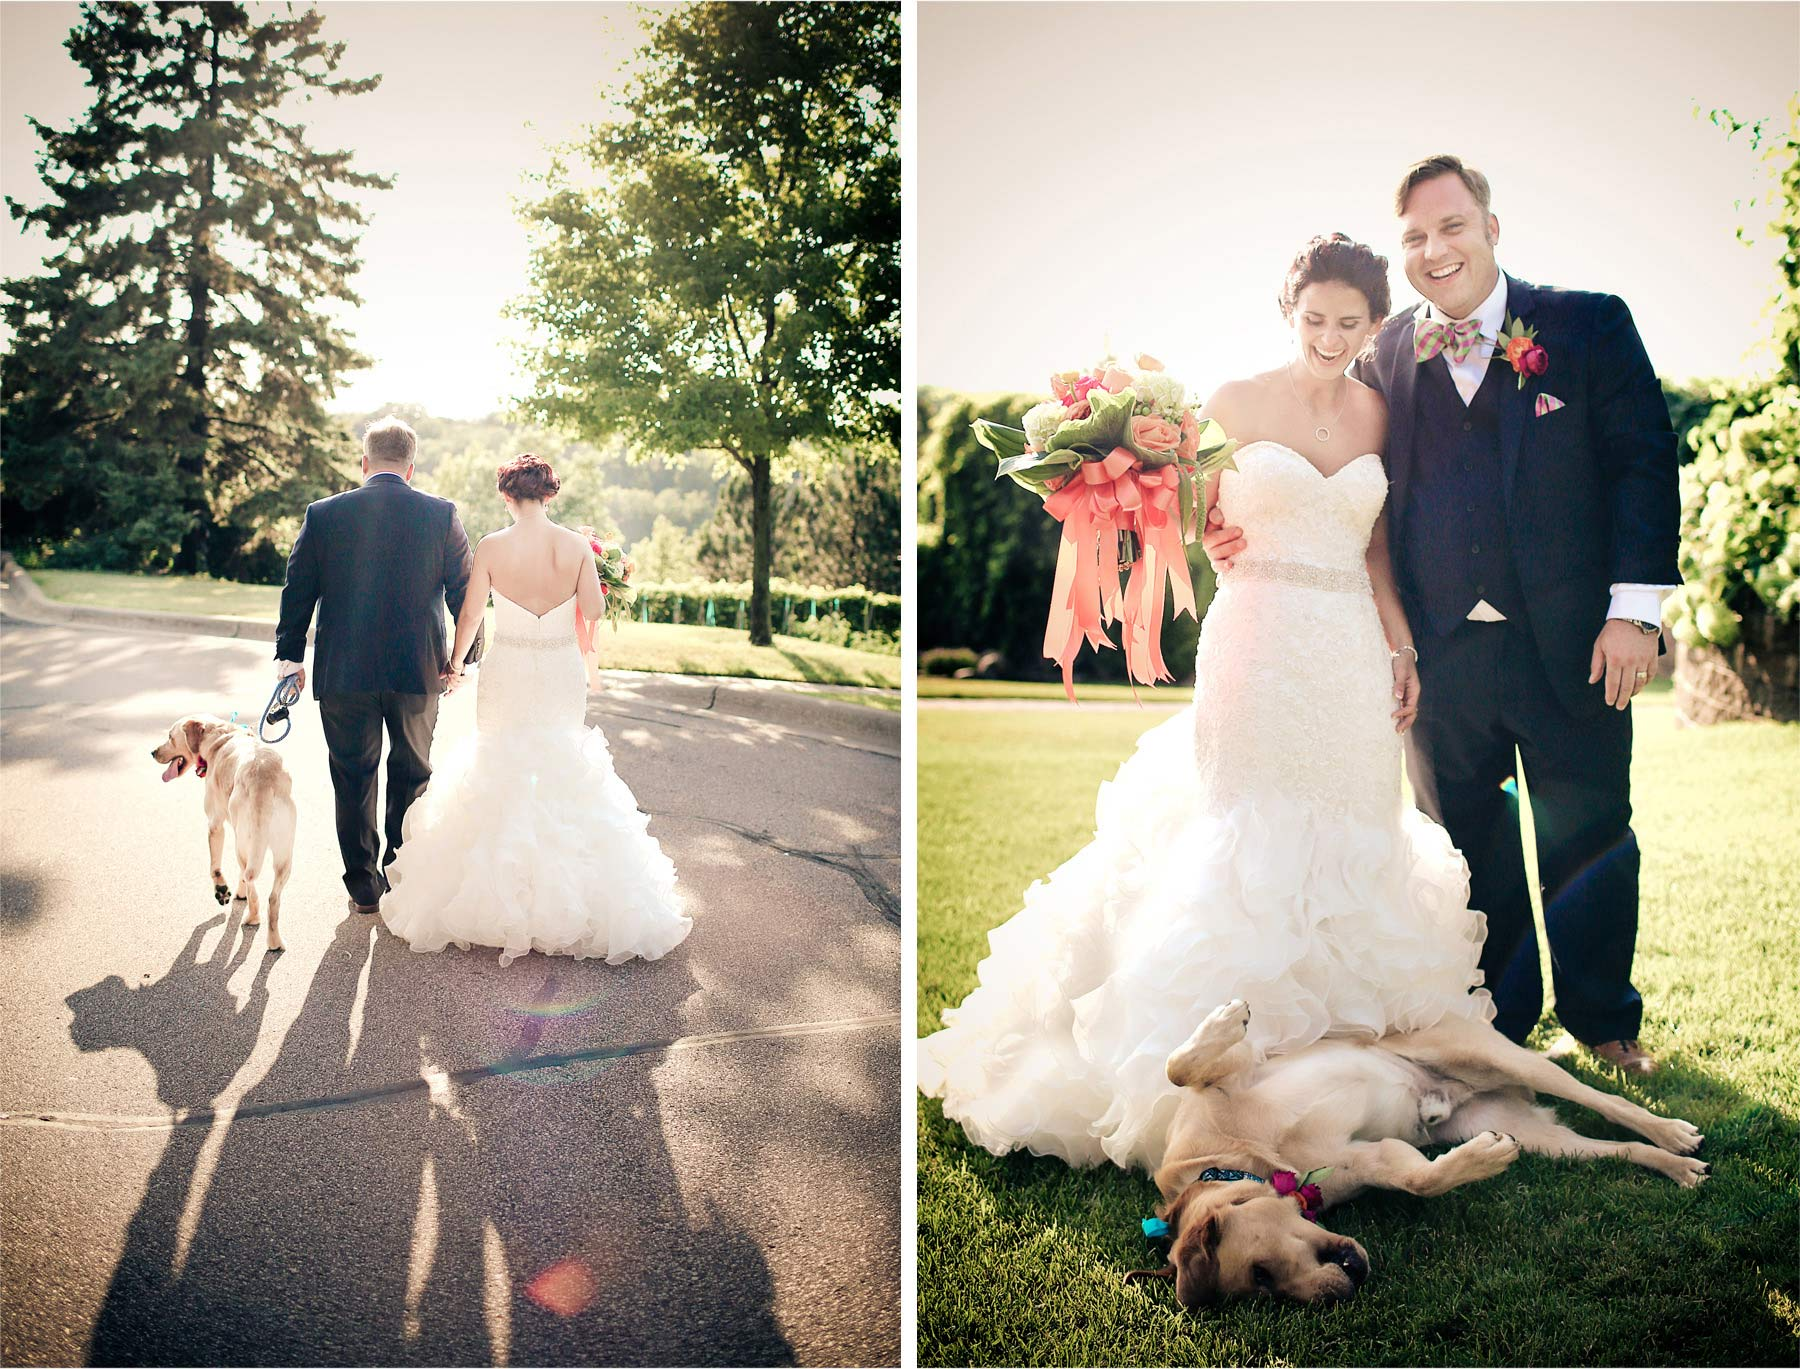 20-Saint-Paul-Minnesota-Wedding-Photographer-by-Andrew-Vick-Photography-Summer-Bride-Groom-Dog-Vintage-Lindsay-and-Dustin.jpg